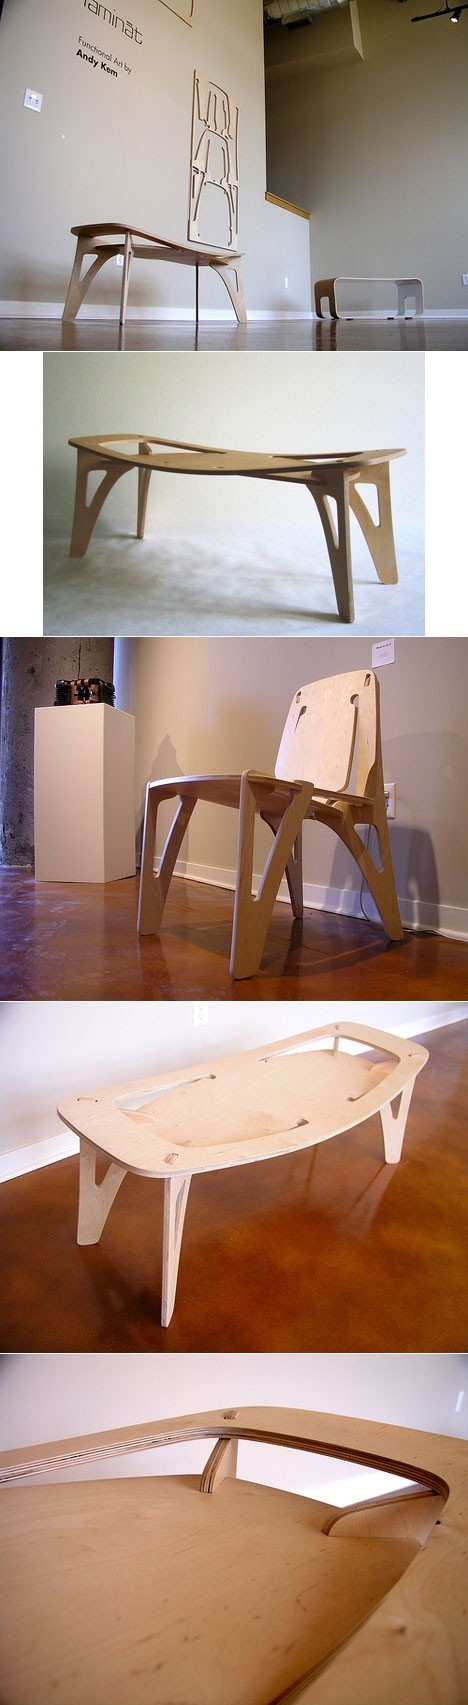 No Glue Included Design Details Pinterest Plywood